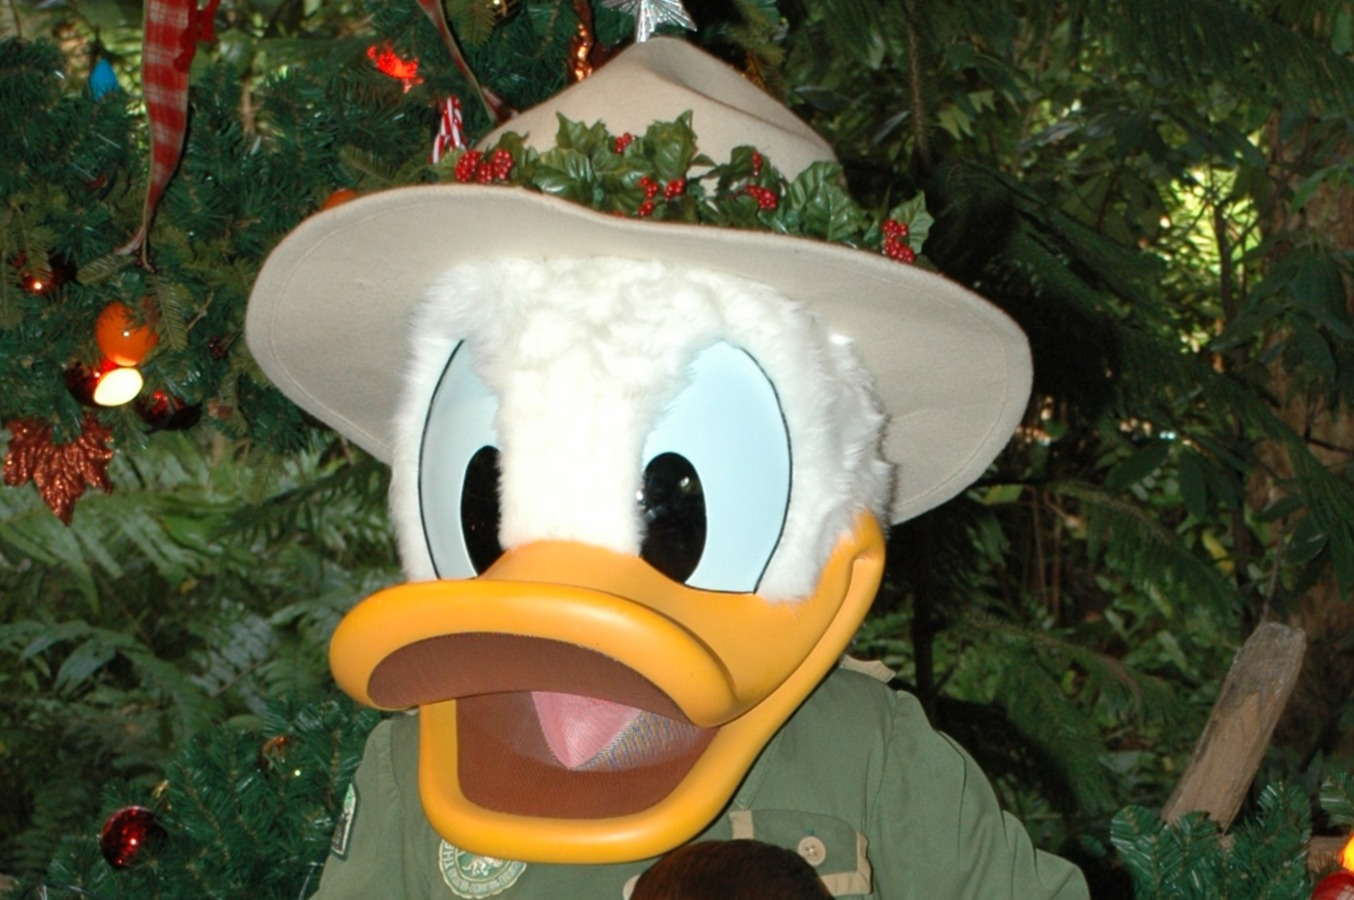 Old Donald 2